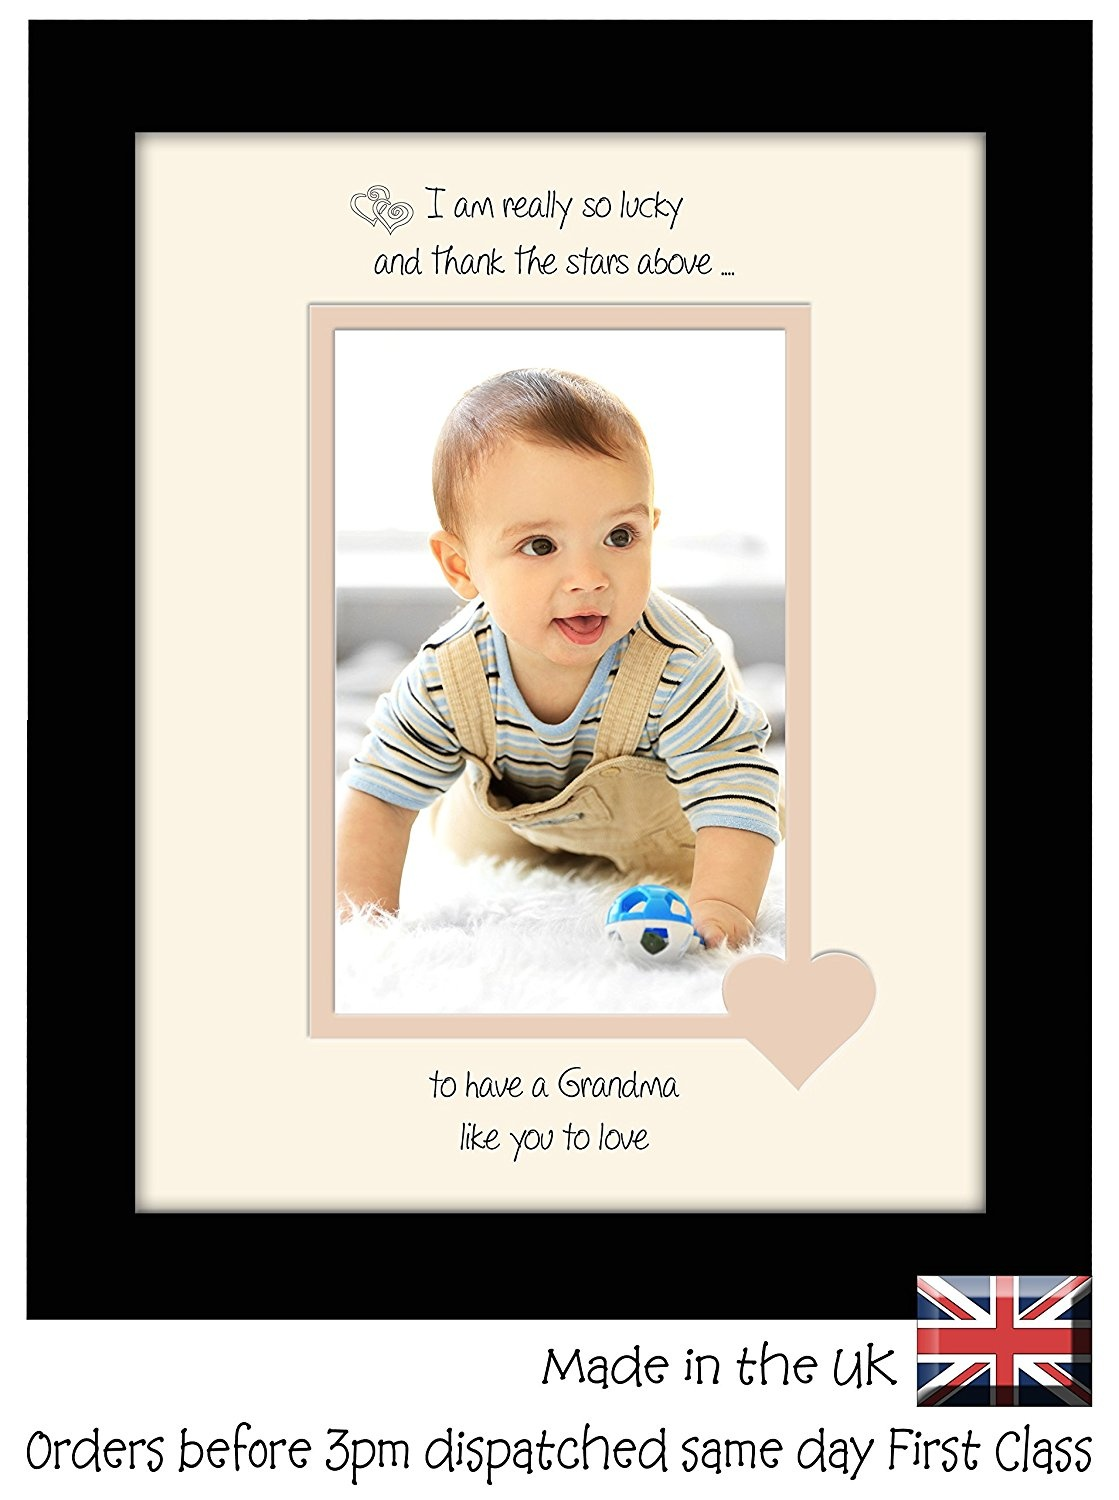 Grandma Photo Frame Homeware: Buy Online from Fishpond.co.nz